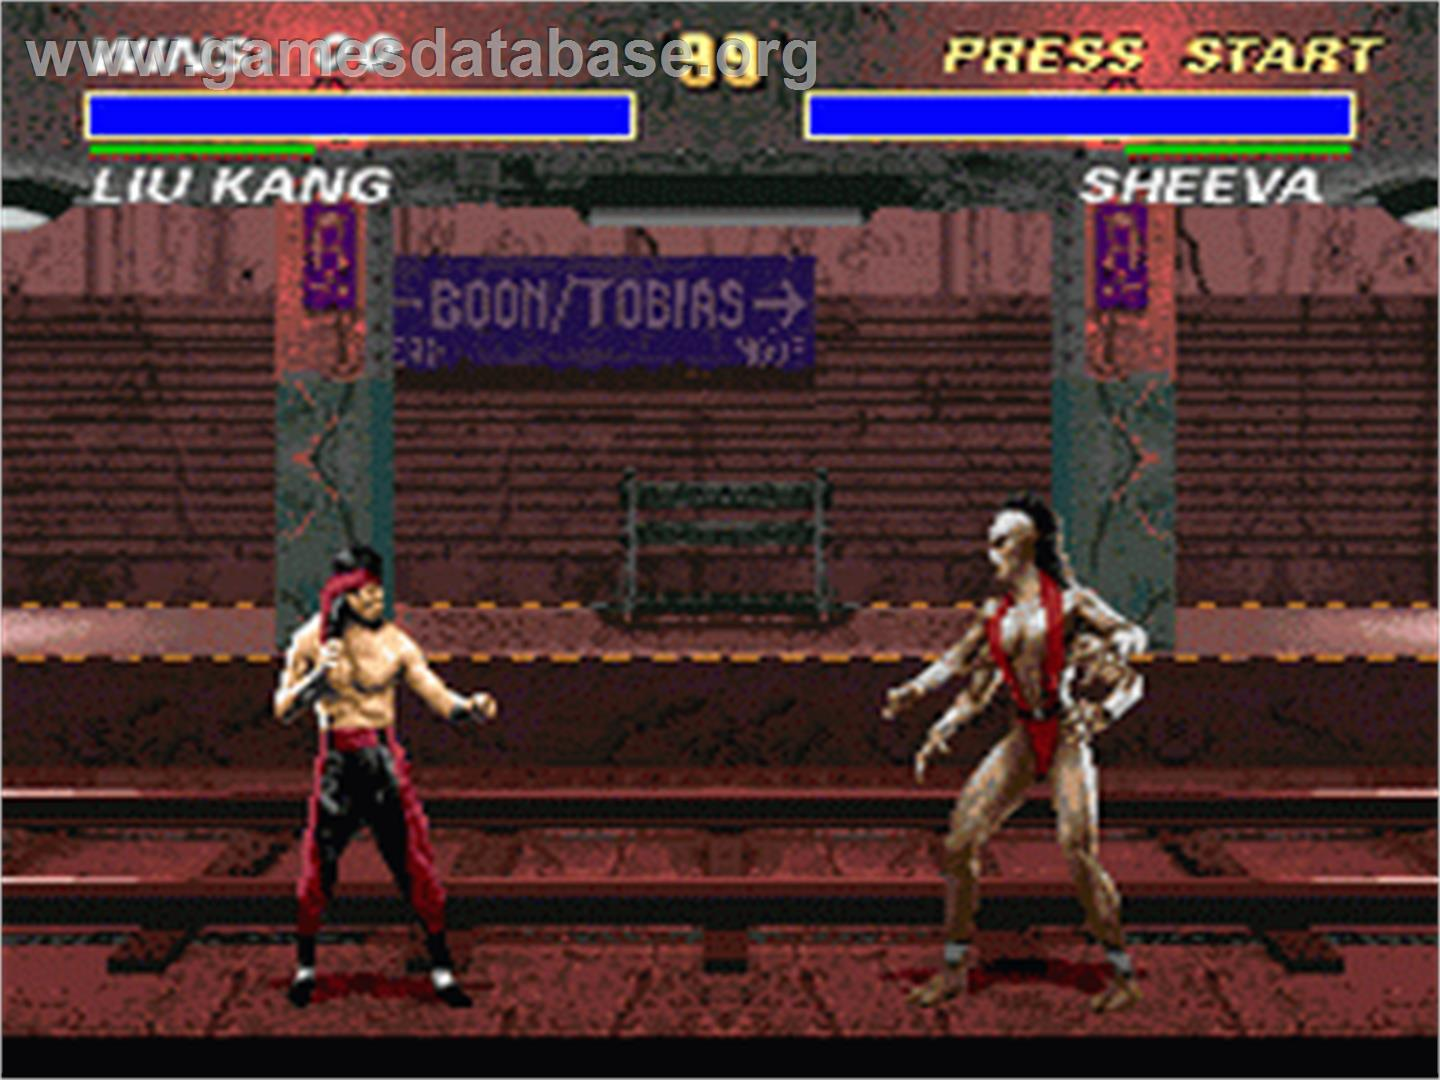 Mortal Kombat 3 - Nintendo SNES - Artwork - In Game